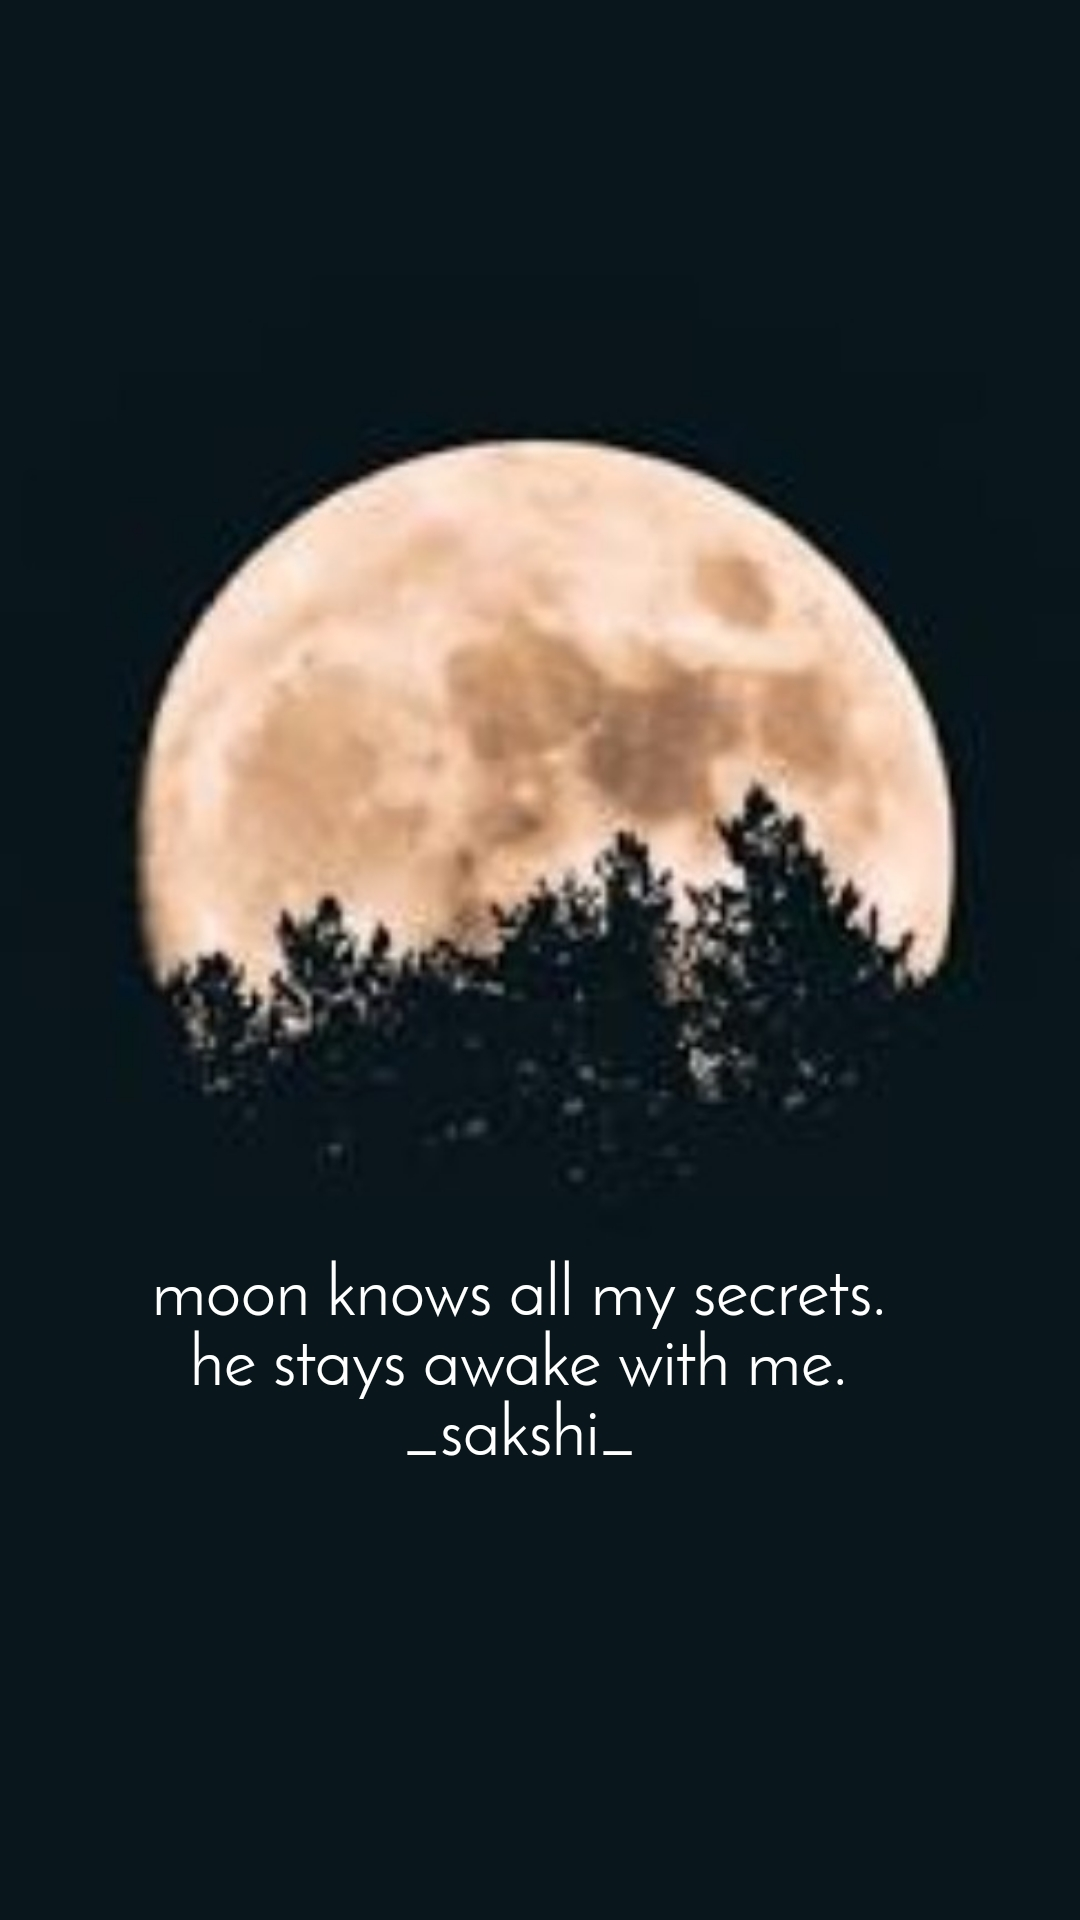 moon knows all my secrets. he stays awake with me. _sakshi_